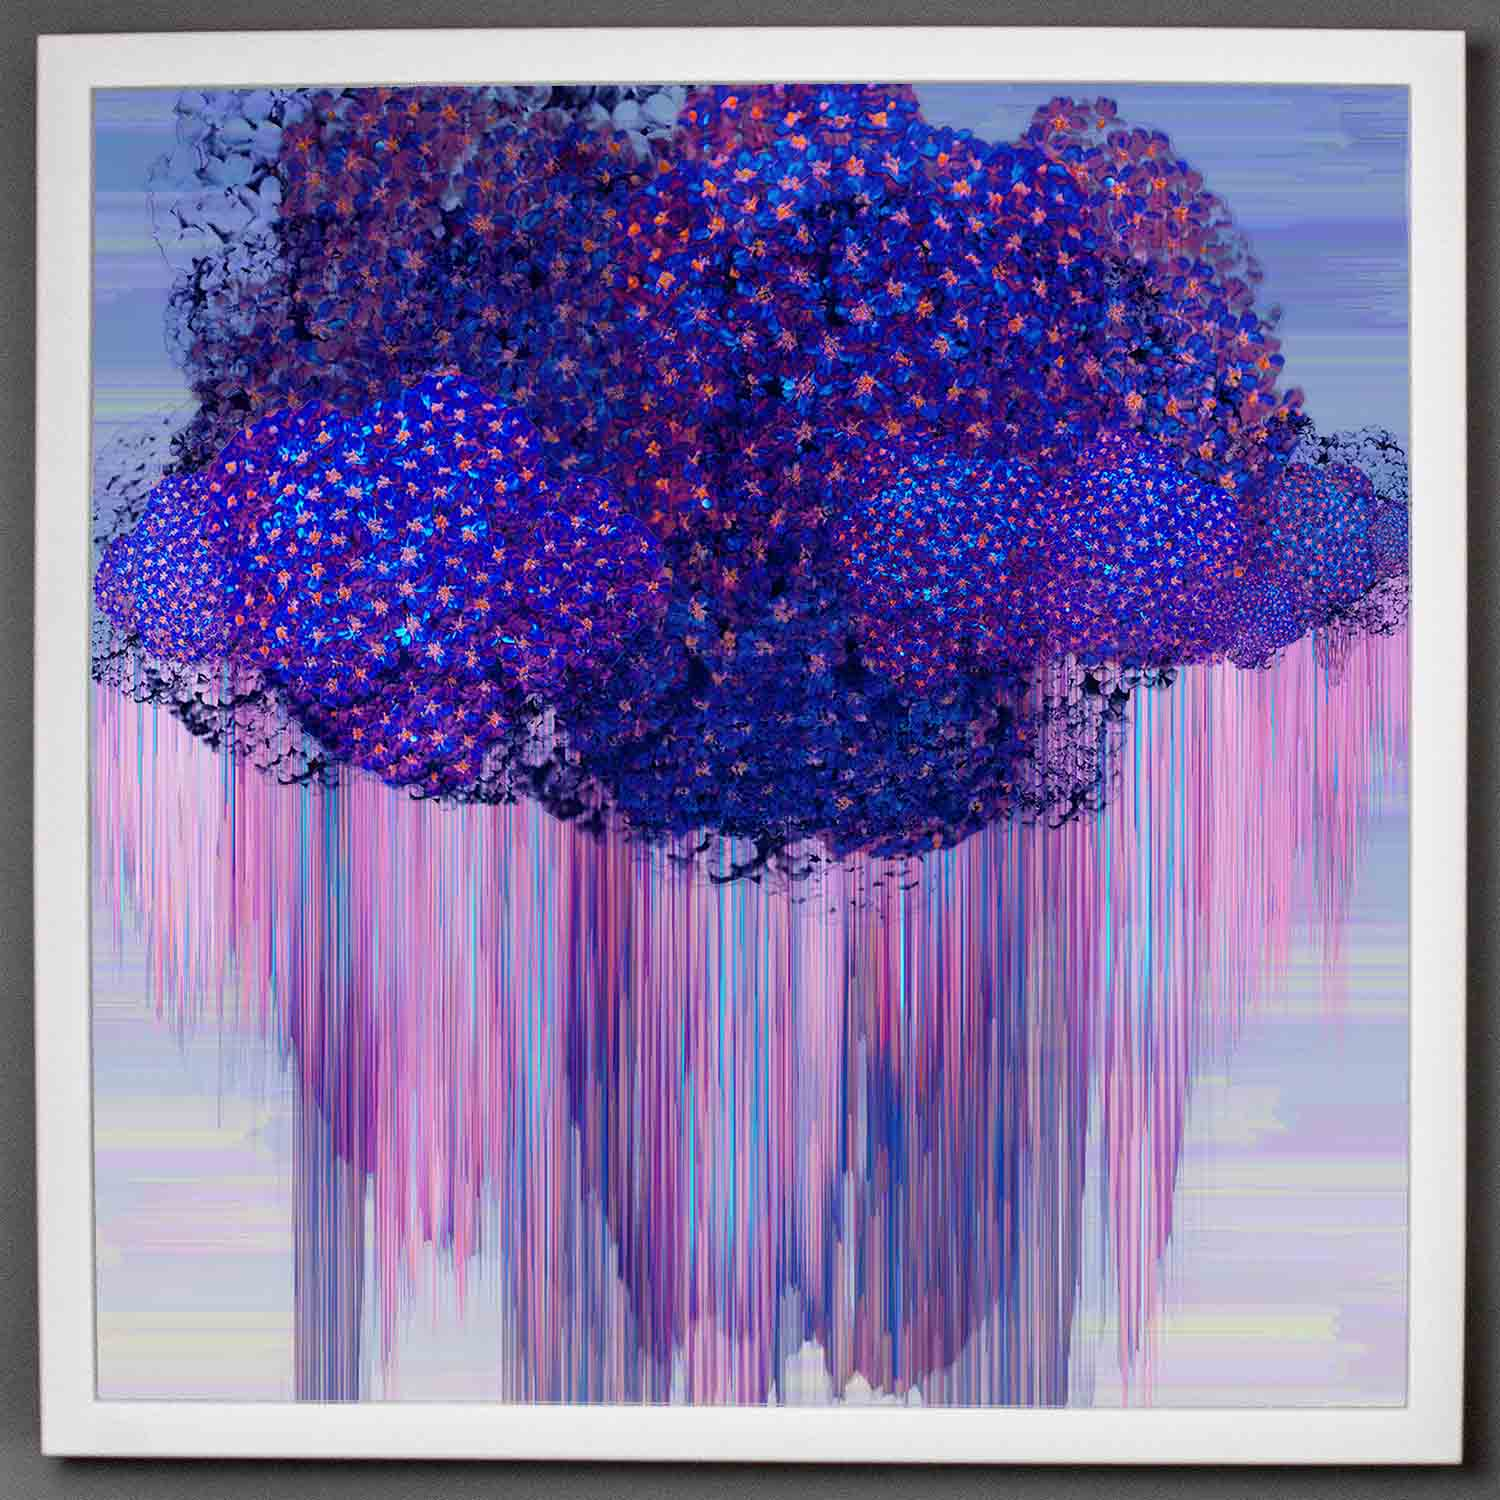 visual-flux-purple-rain-bigframe.jpg